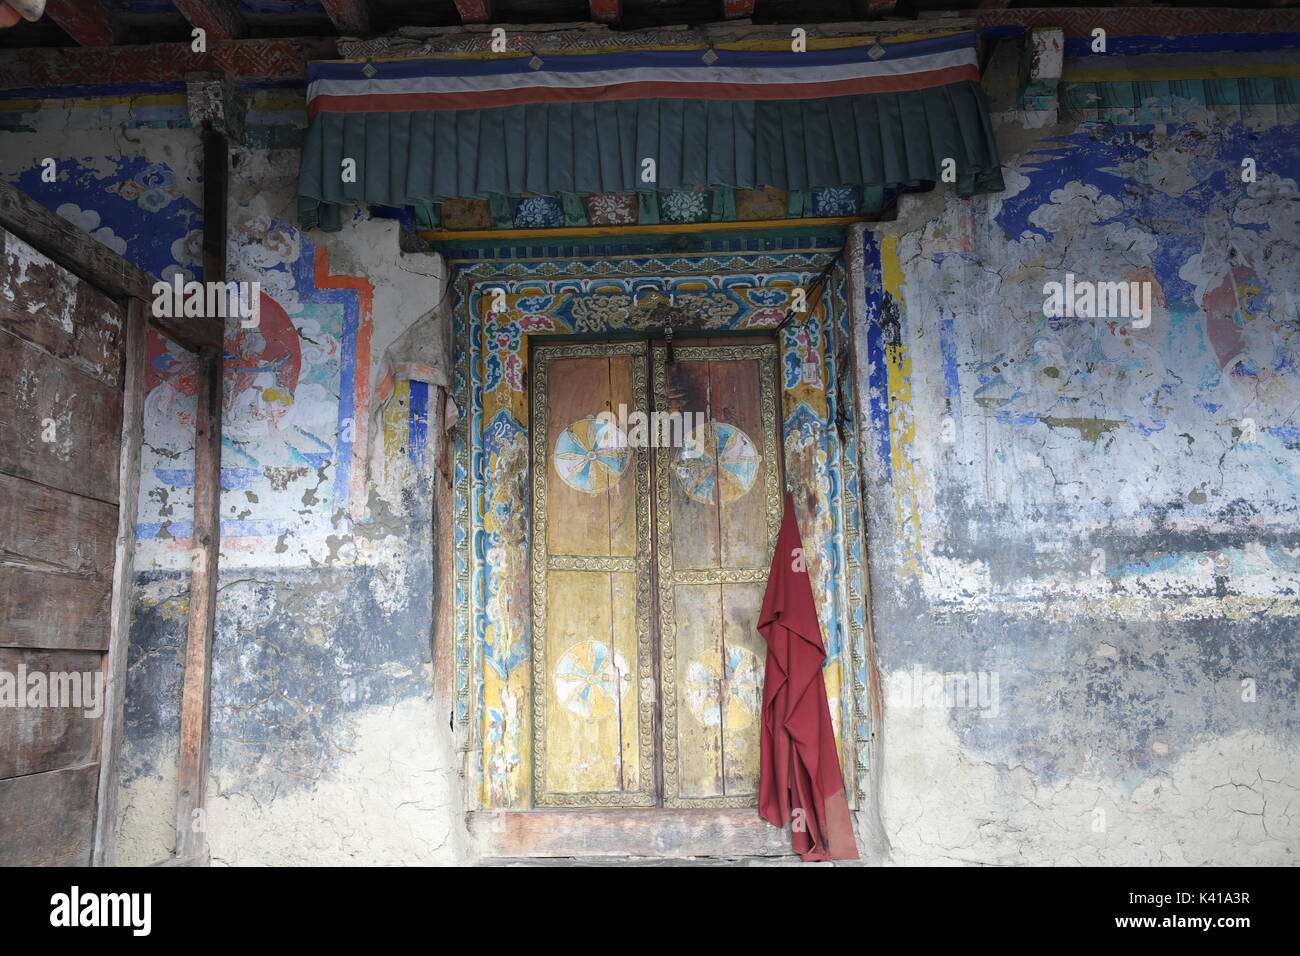 Monks Red Robe Hanging on Door with Tibetan Art Painting at Mu Gompa Monastery, Nepal on Tibetan Border in the Tsum Valley Remote Region - Stock Image